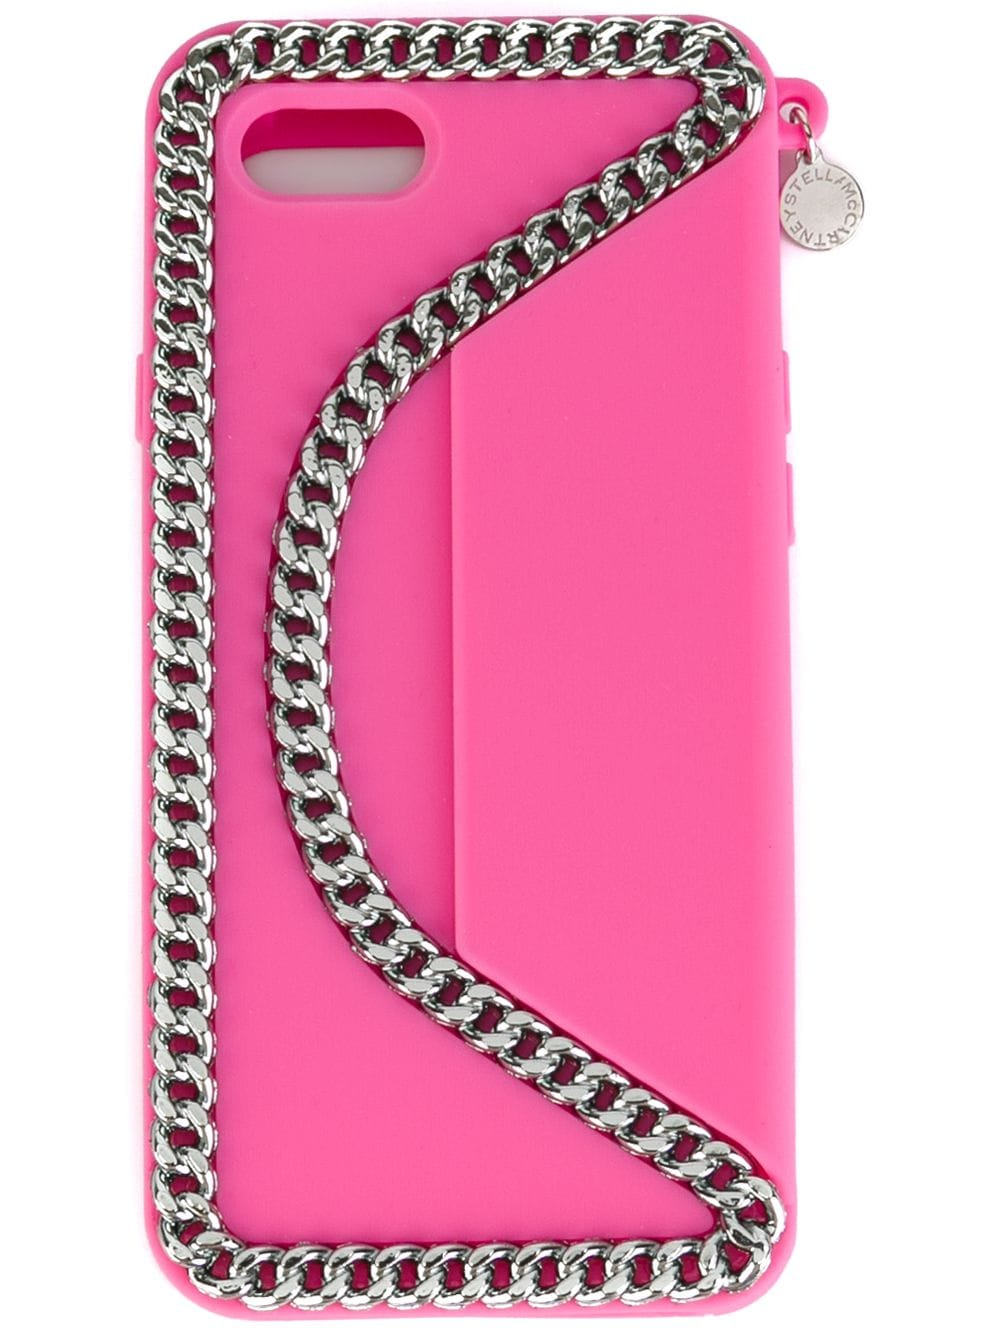 Stella McCartney Falabella iPhone 6 case - PINK von Stella McCartney